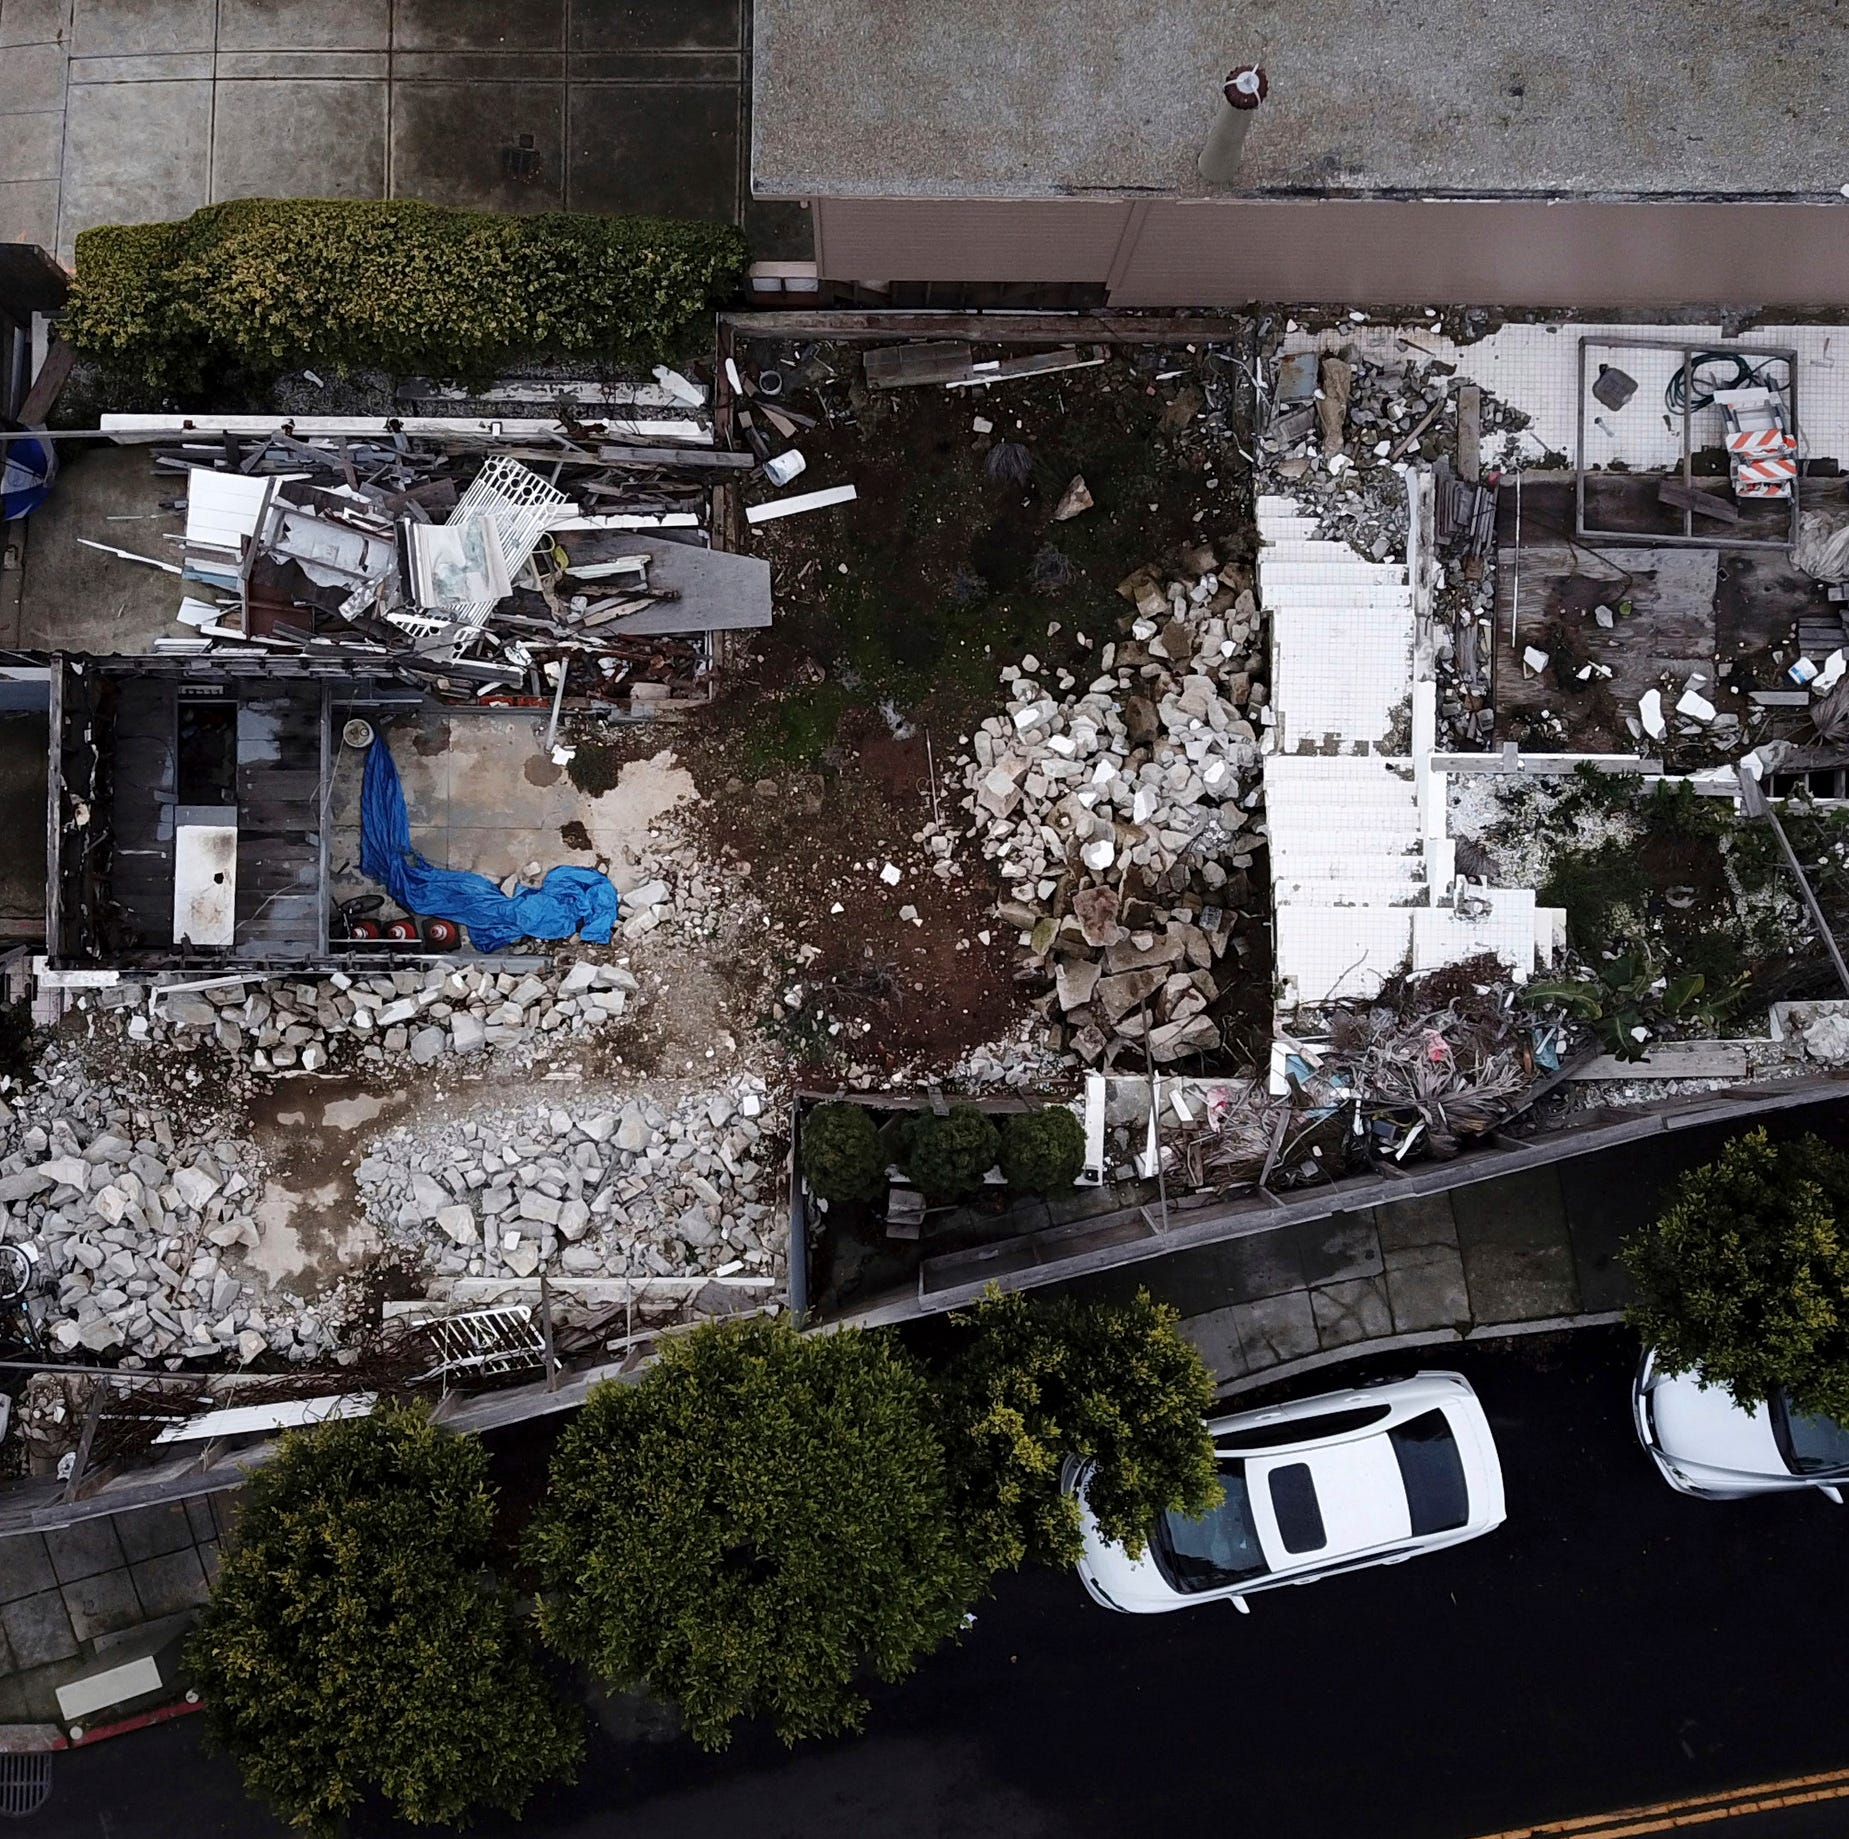 Man who demolished landmark San Francisco house ordered to build replica